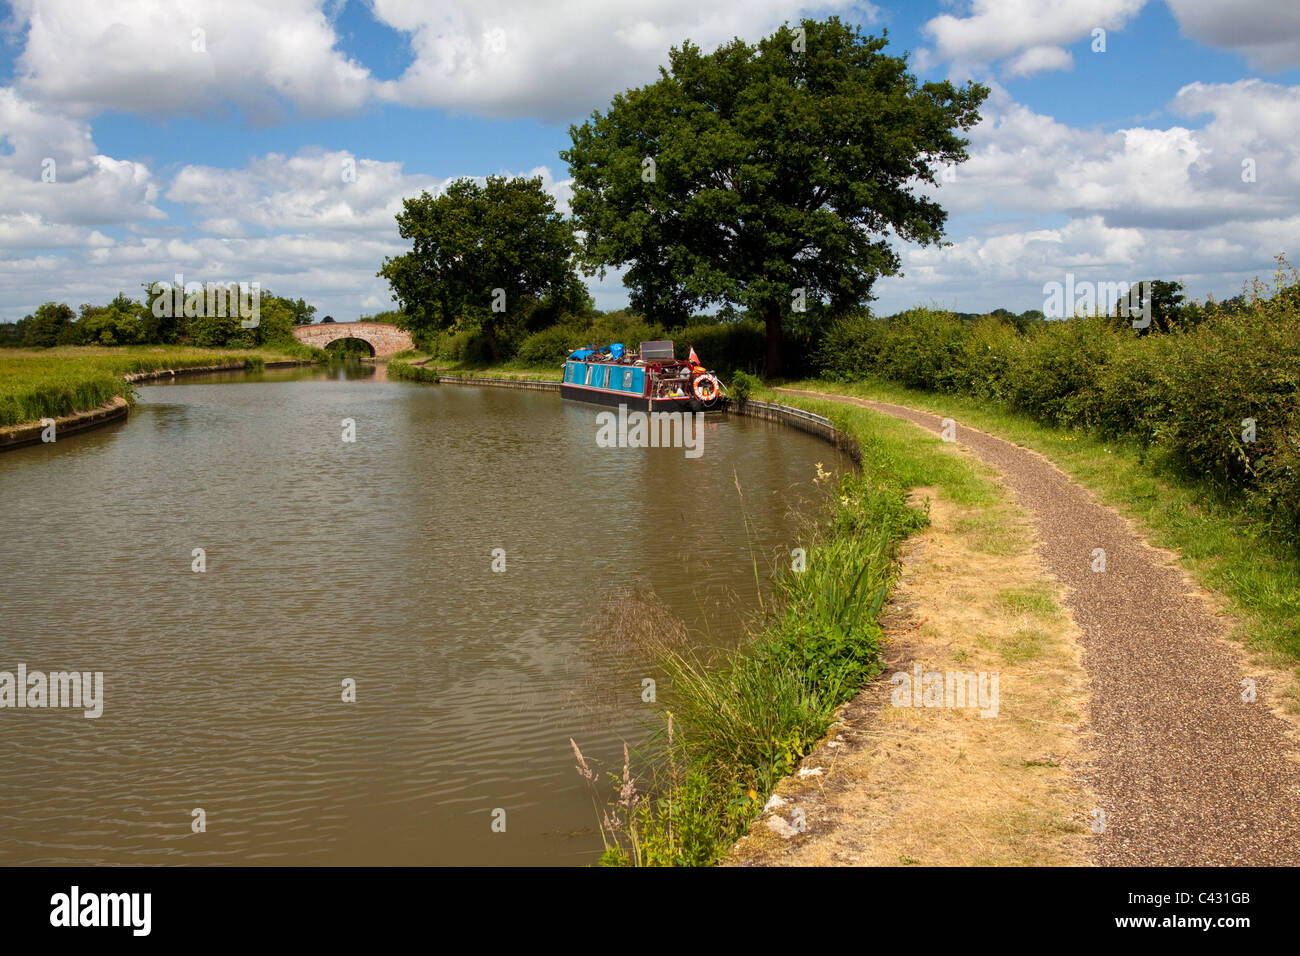 A view along the towpath on a bright sunny day with a canal boat and a bridge in the distance. - Stock Image